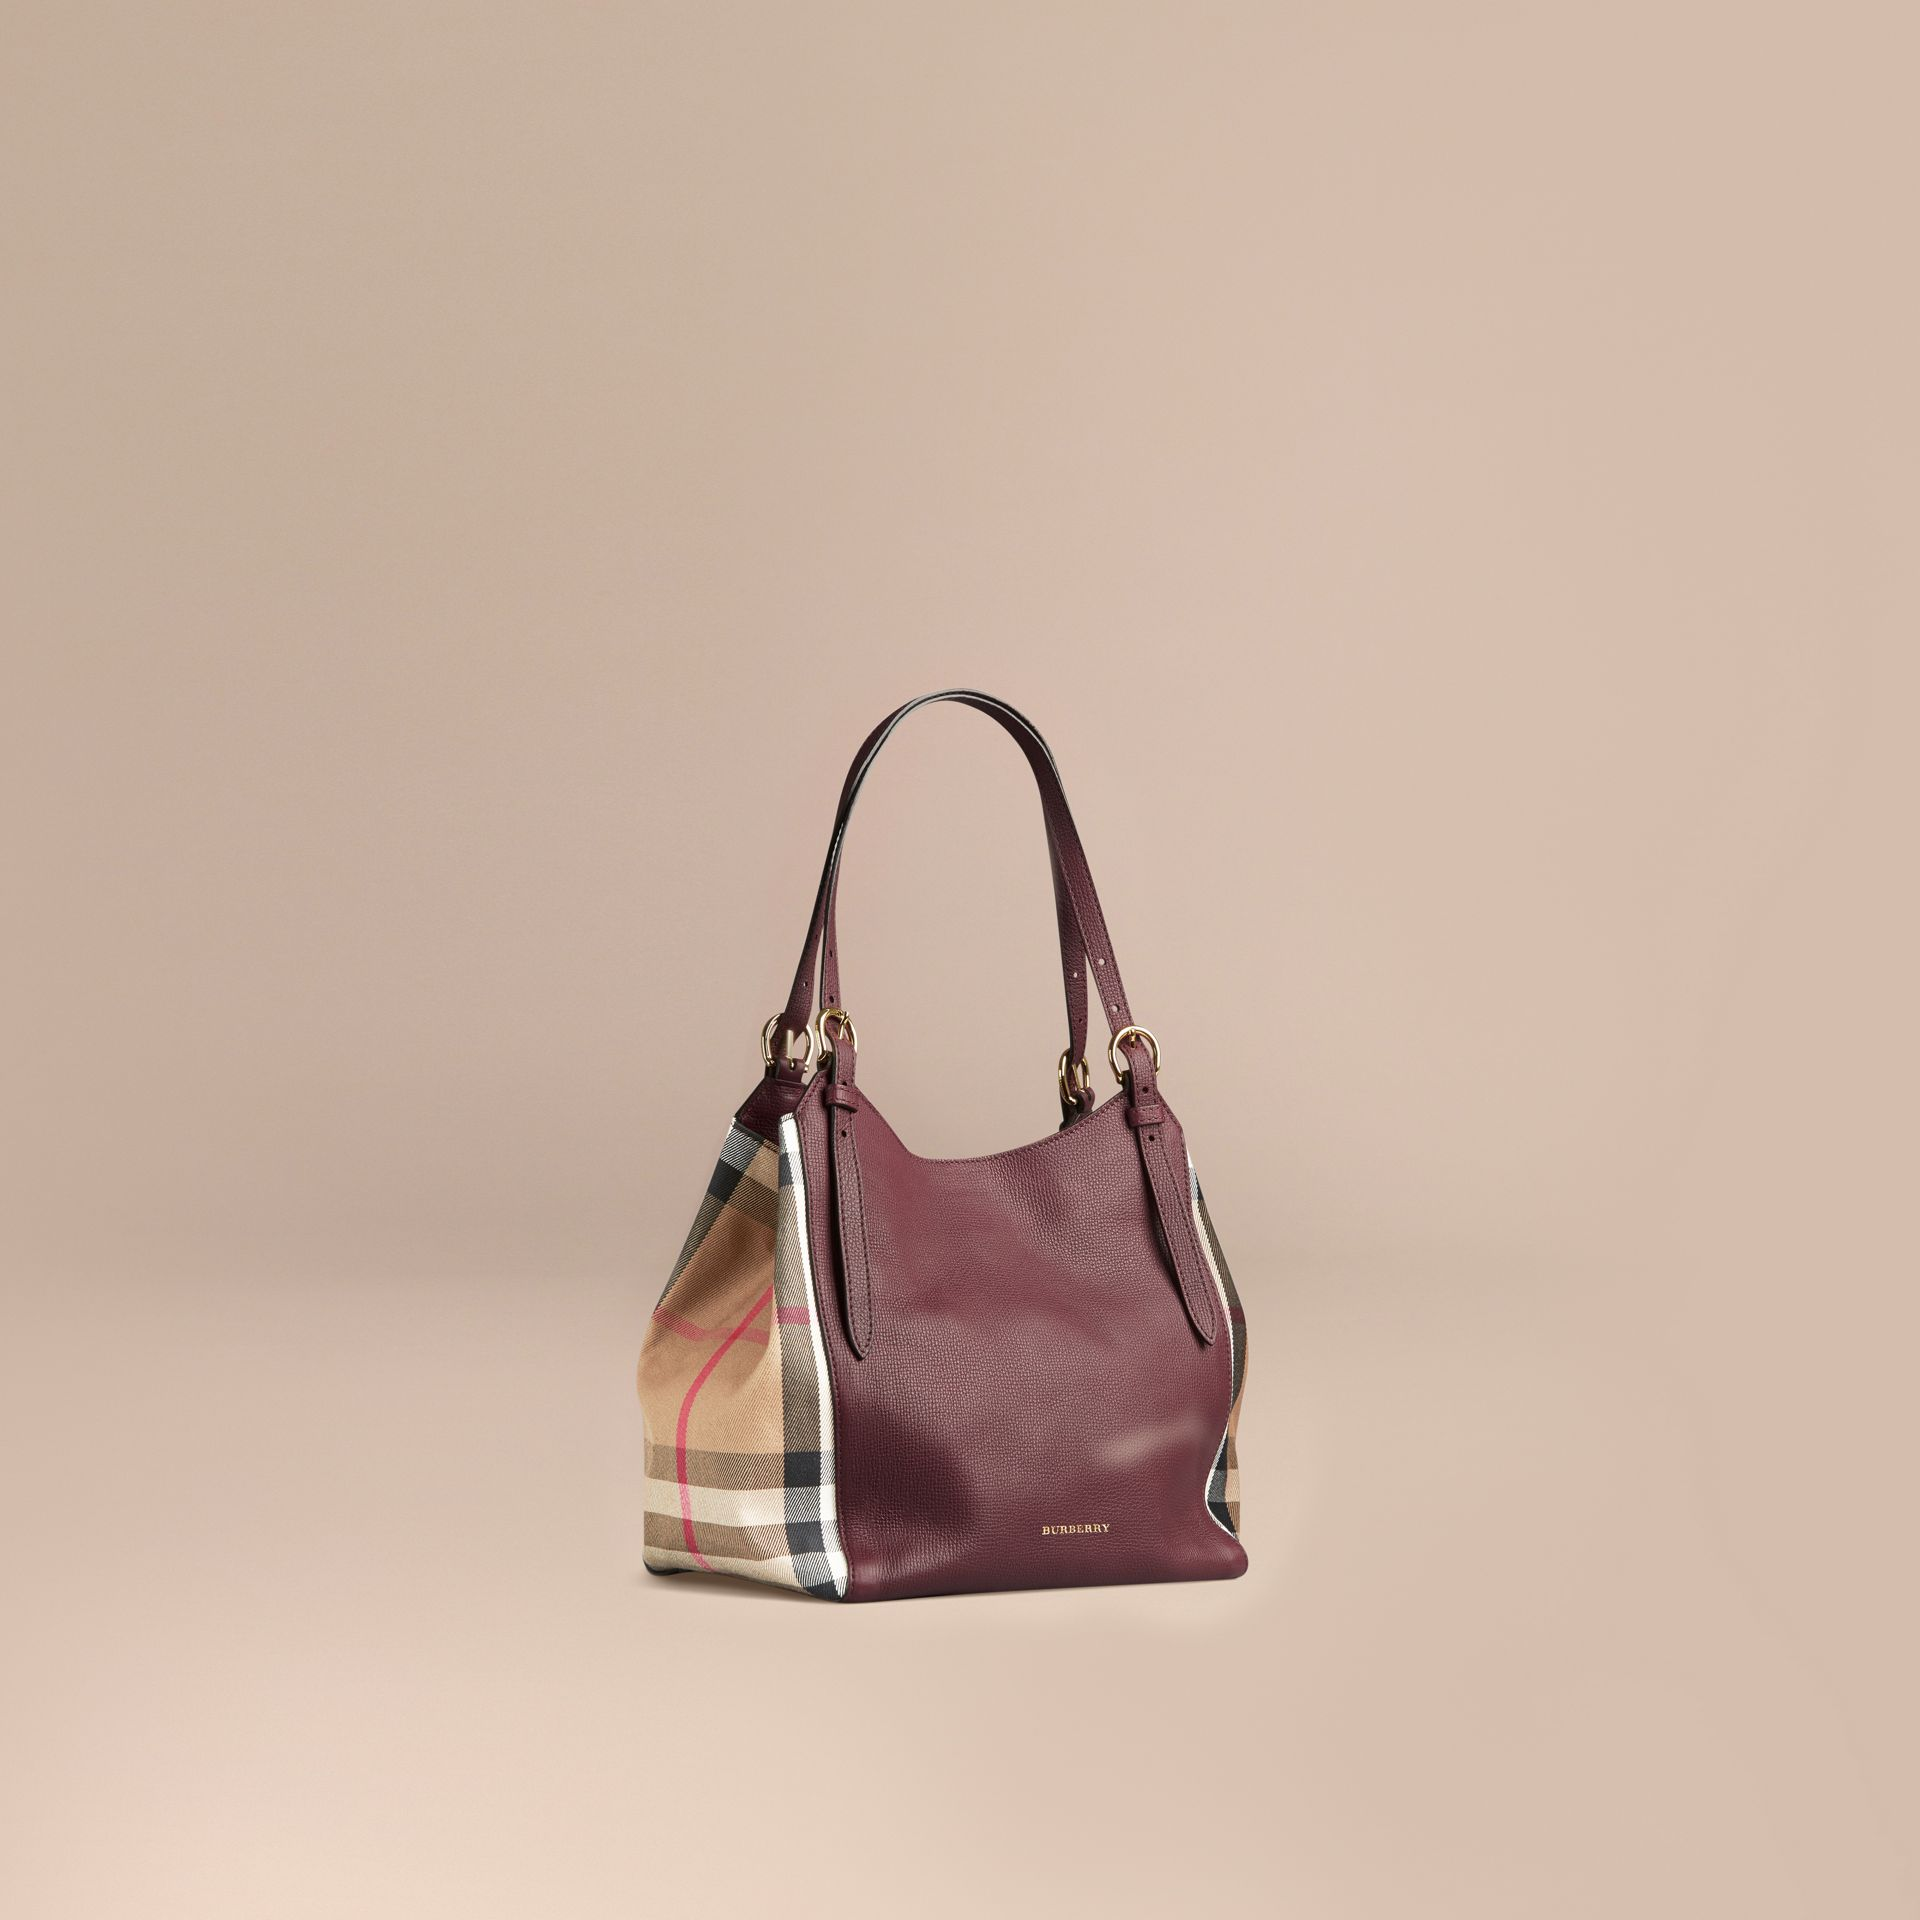 Rouge acajou Petit sac The Canter en cuir avec motif House check Rouge Acajou - photo de la galerie 1